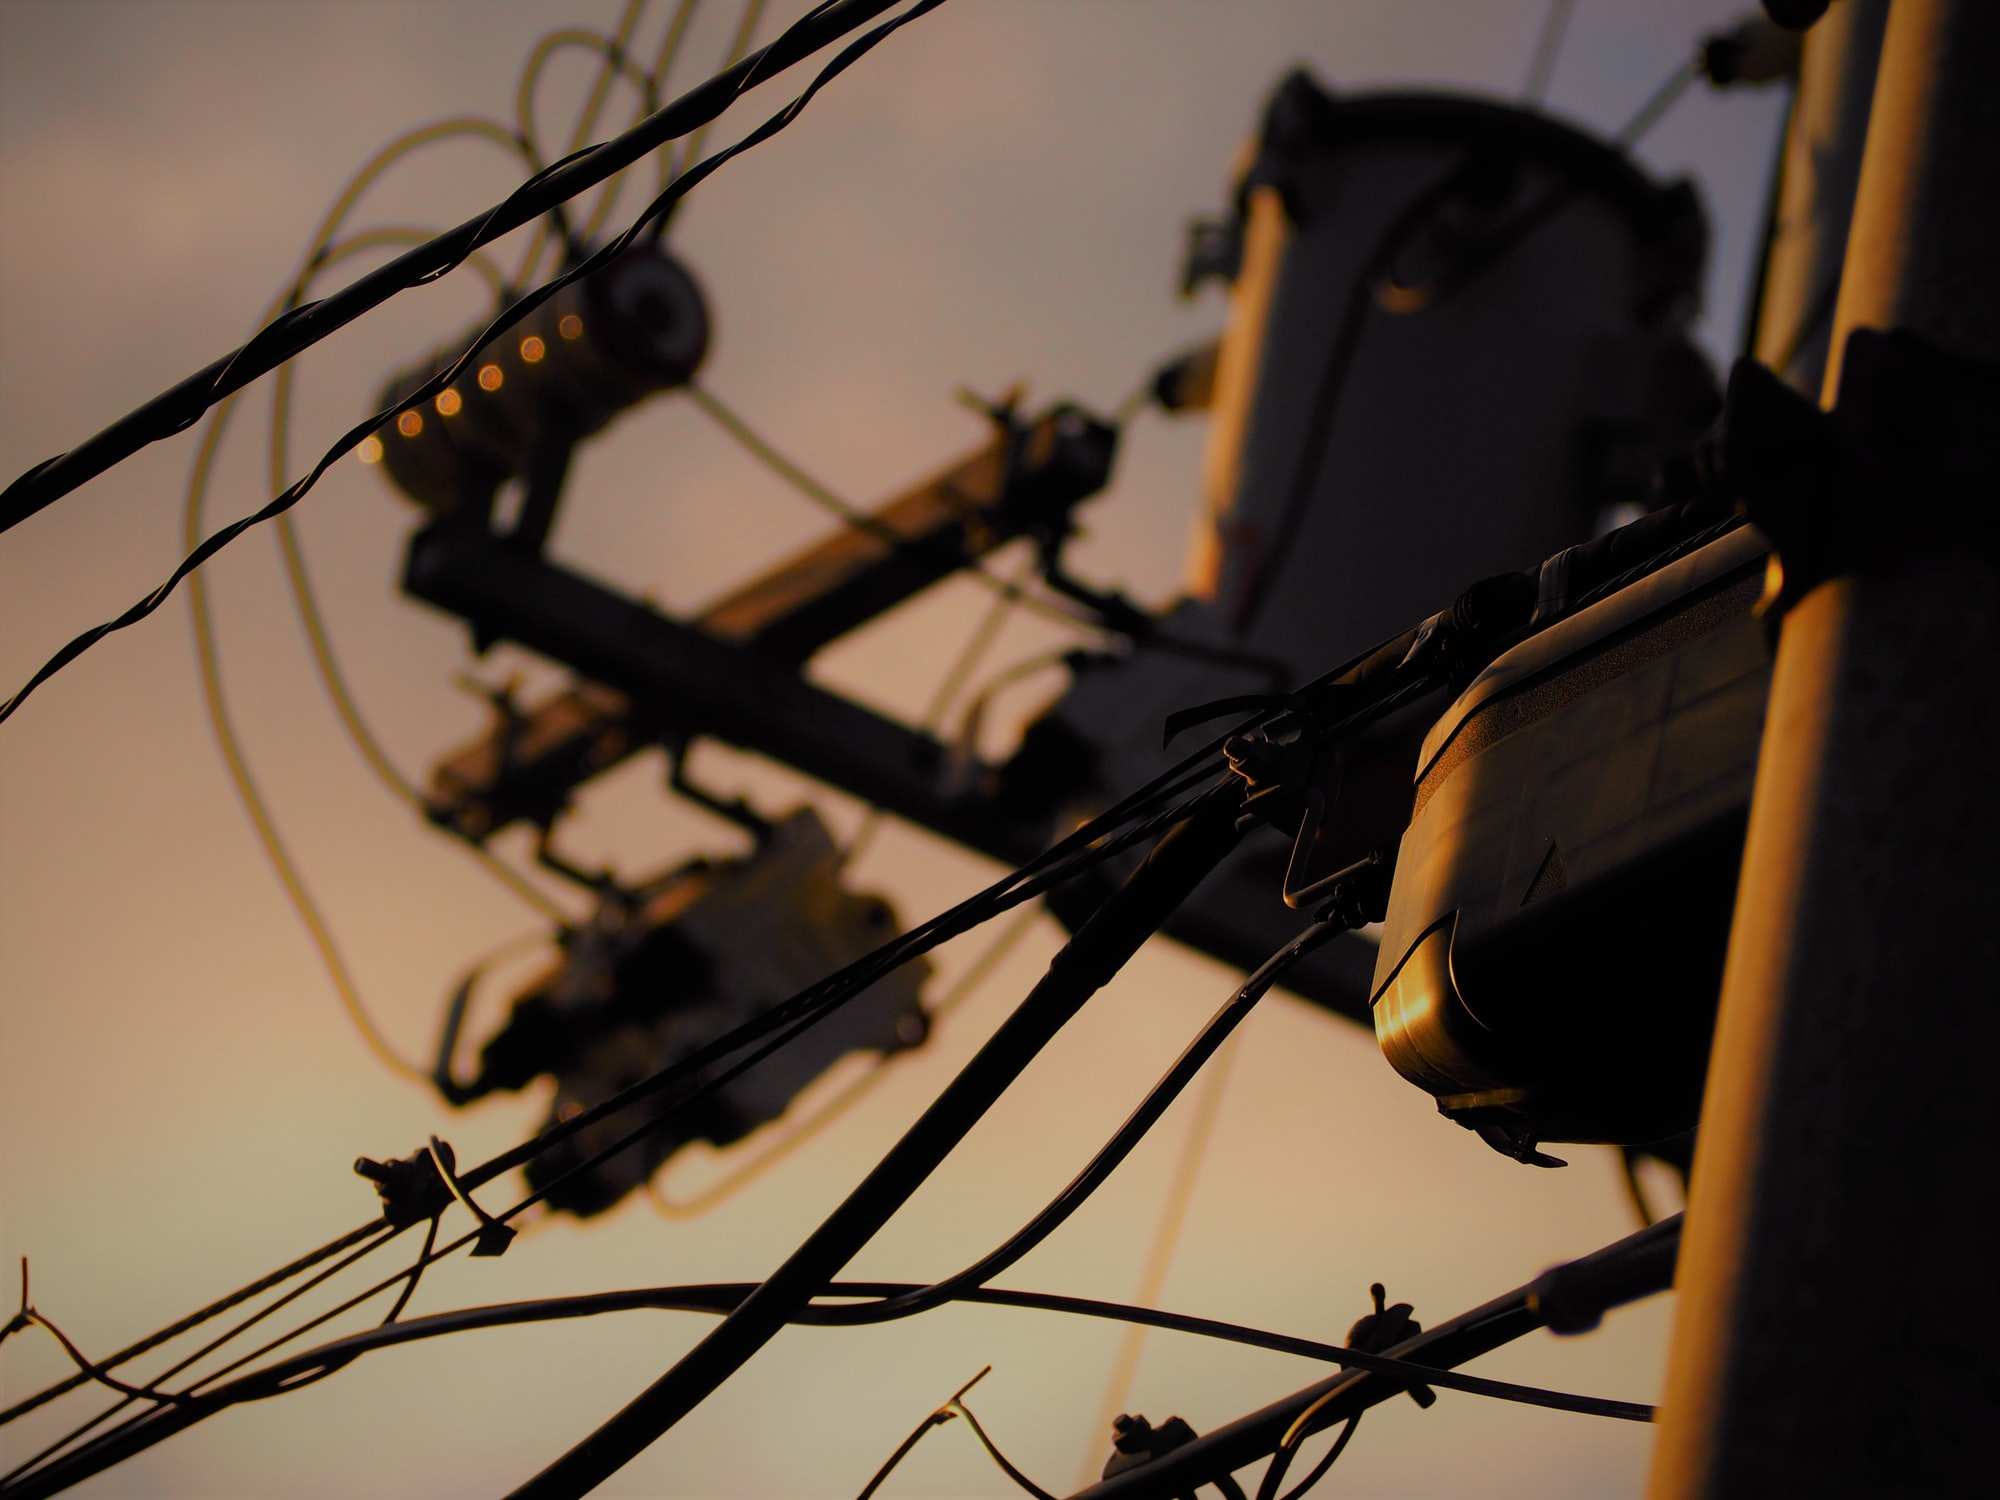 No more eyesore 'spaghetti' wires in Boracay by February